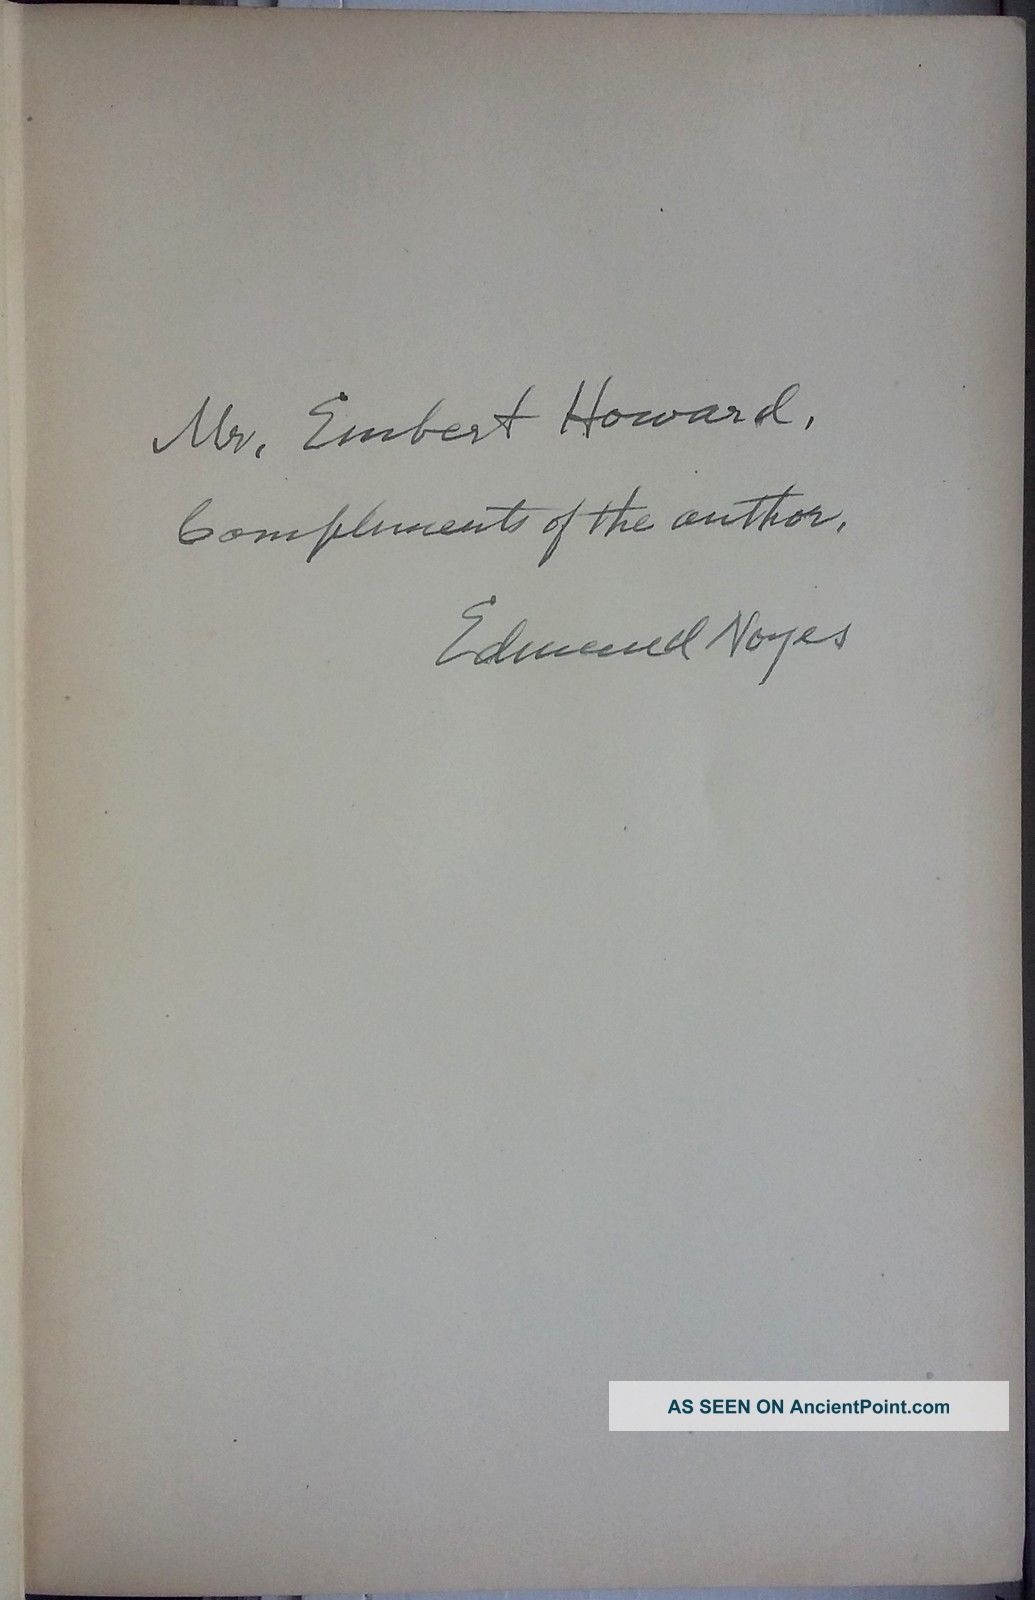 Ethics And Law For Dentists Author Signed 1923 Dentistry Classic Edmund Noyes Dentistry photo